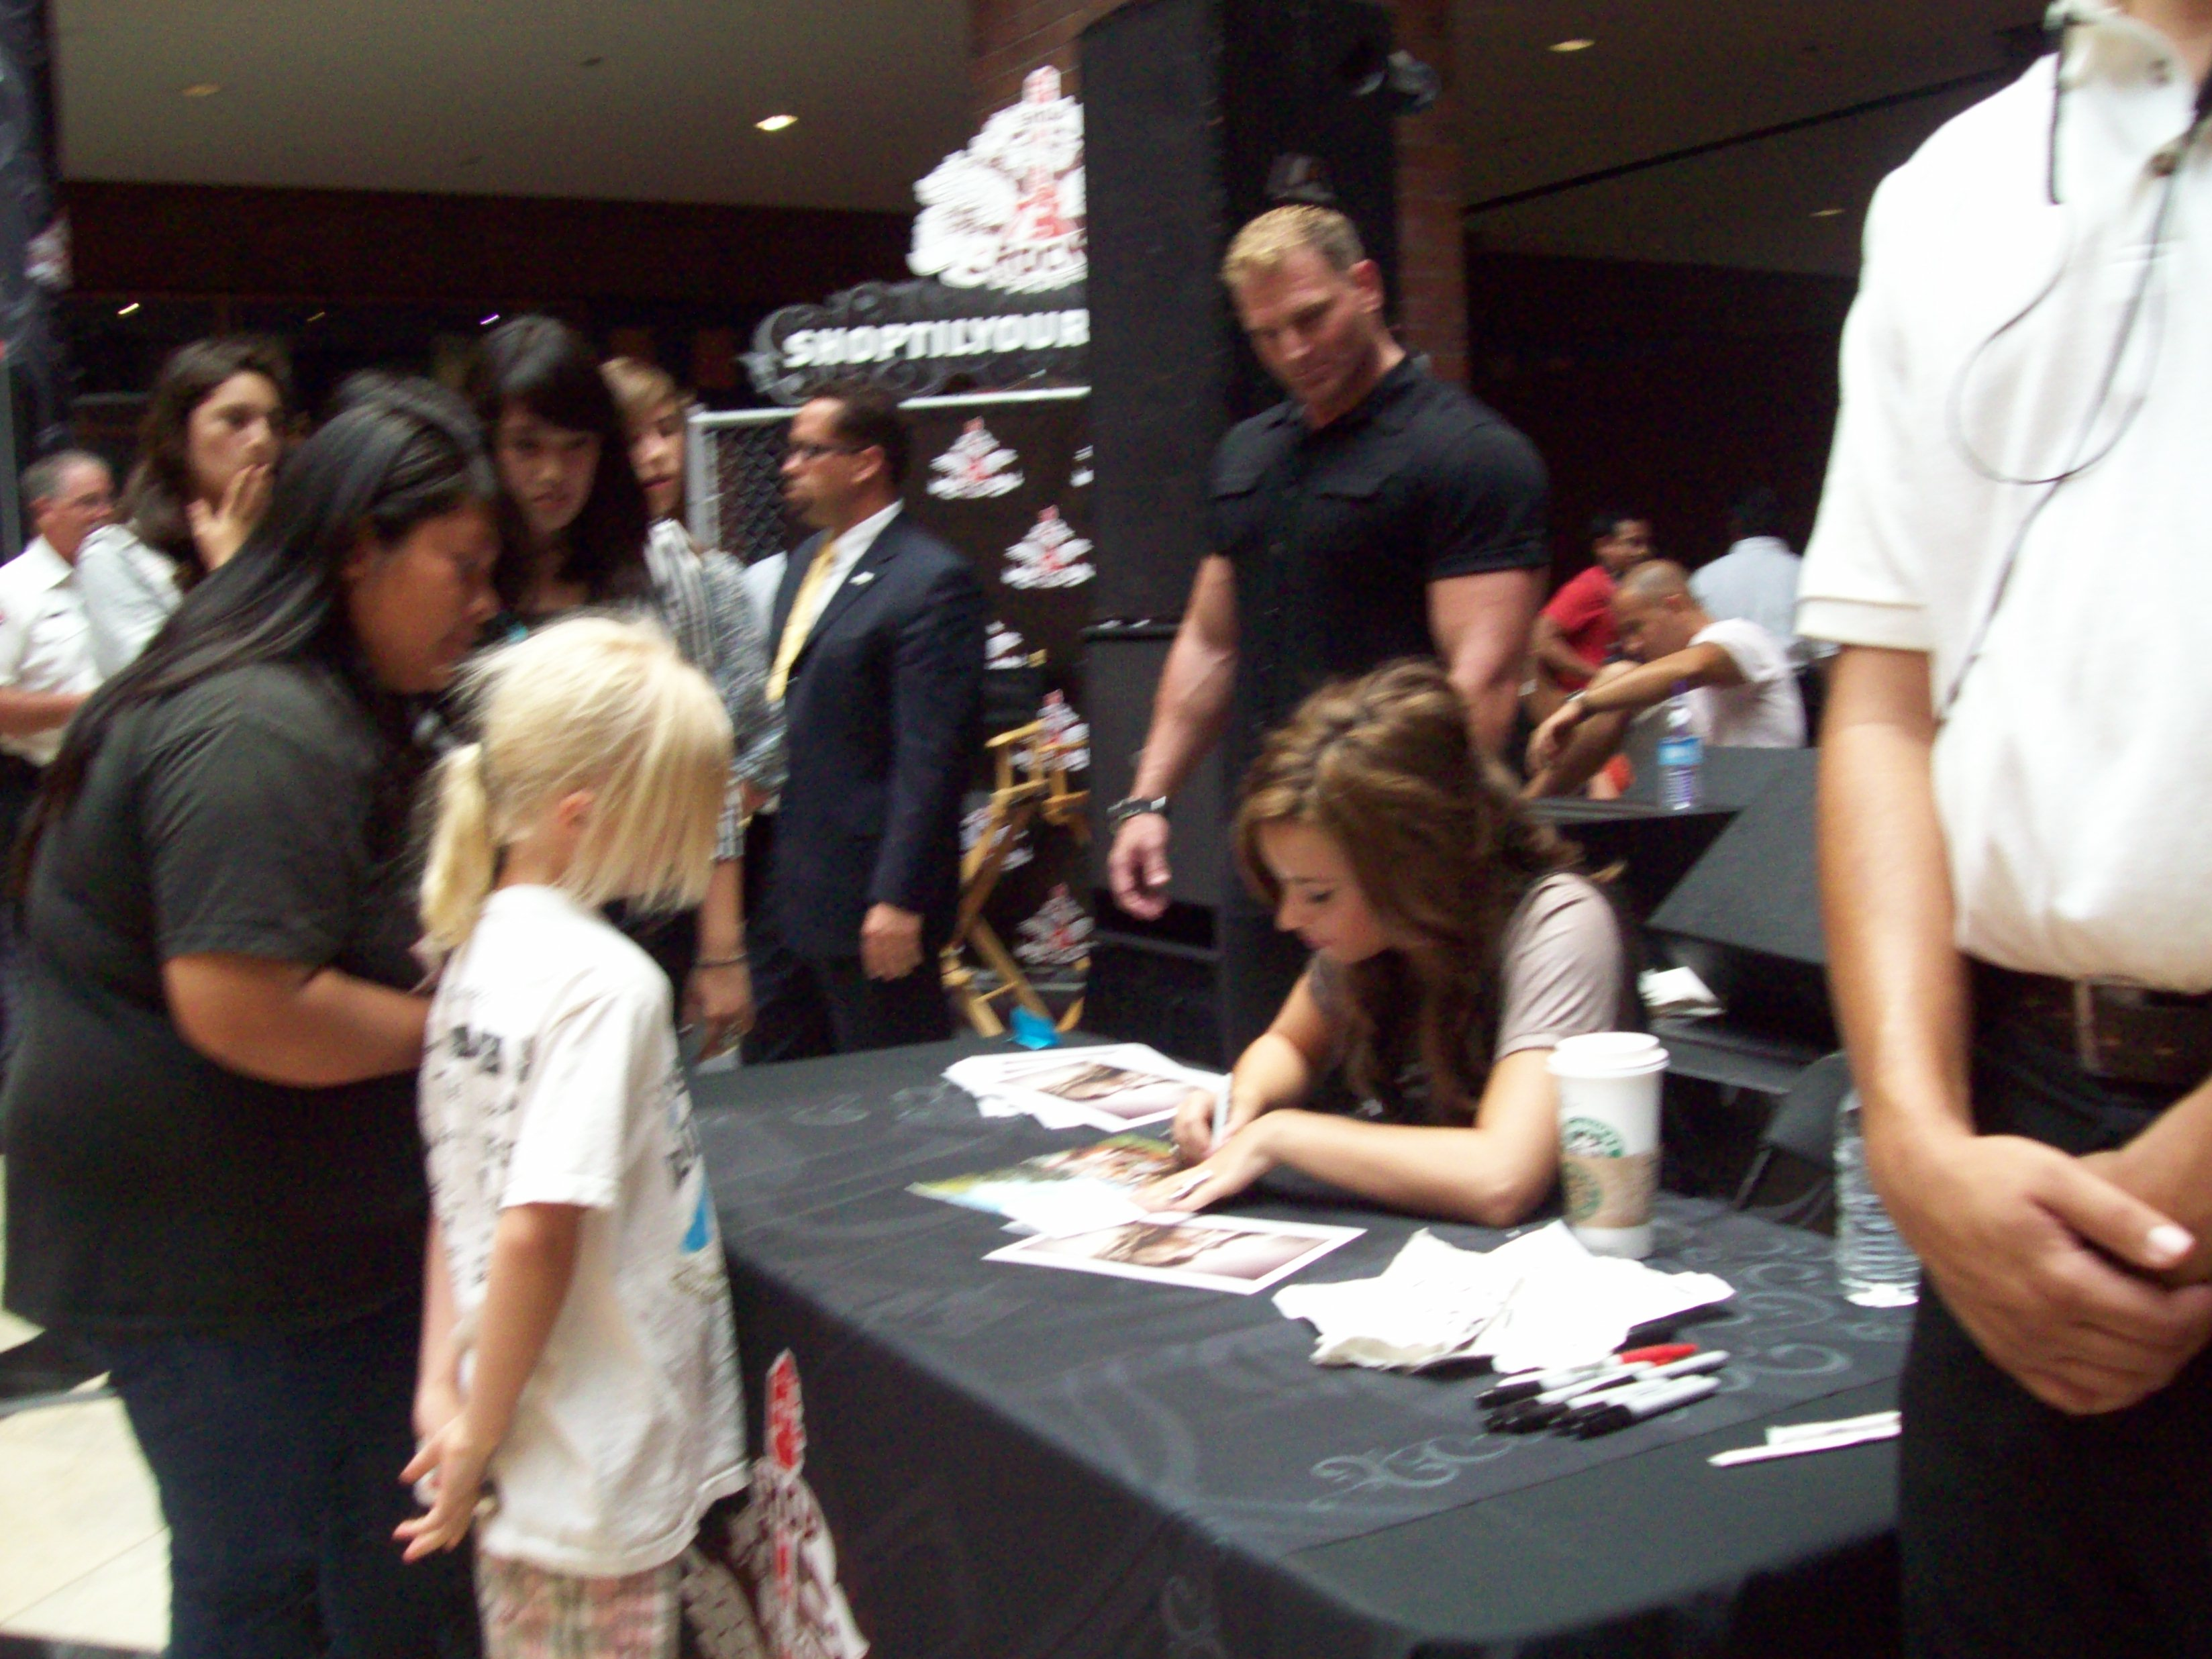 Meeting Stars At Meet And Greets And Cdbook Signings Reach For